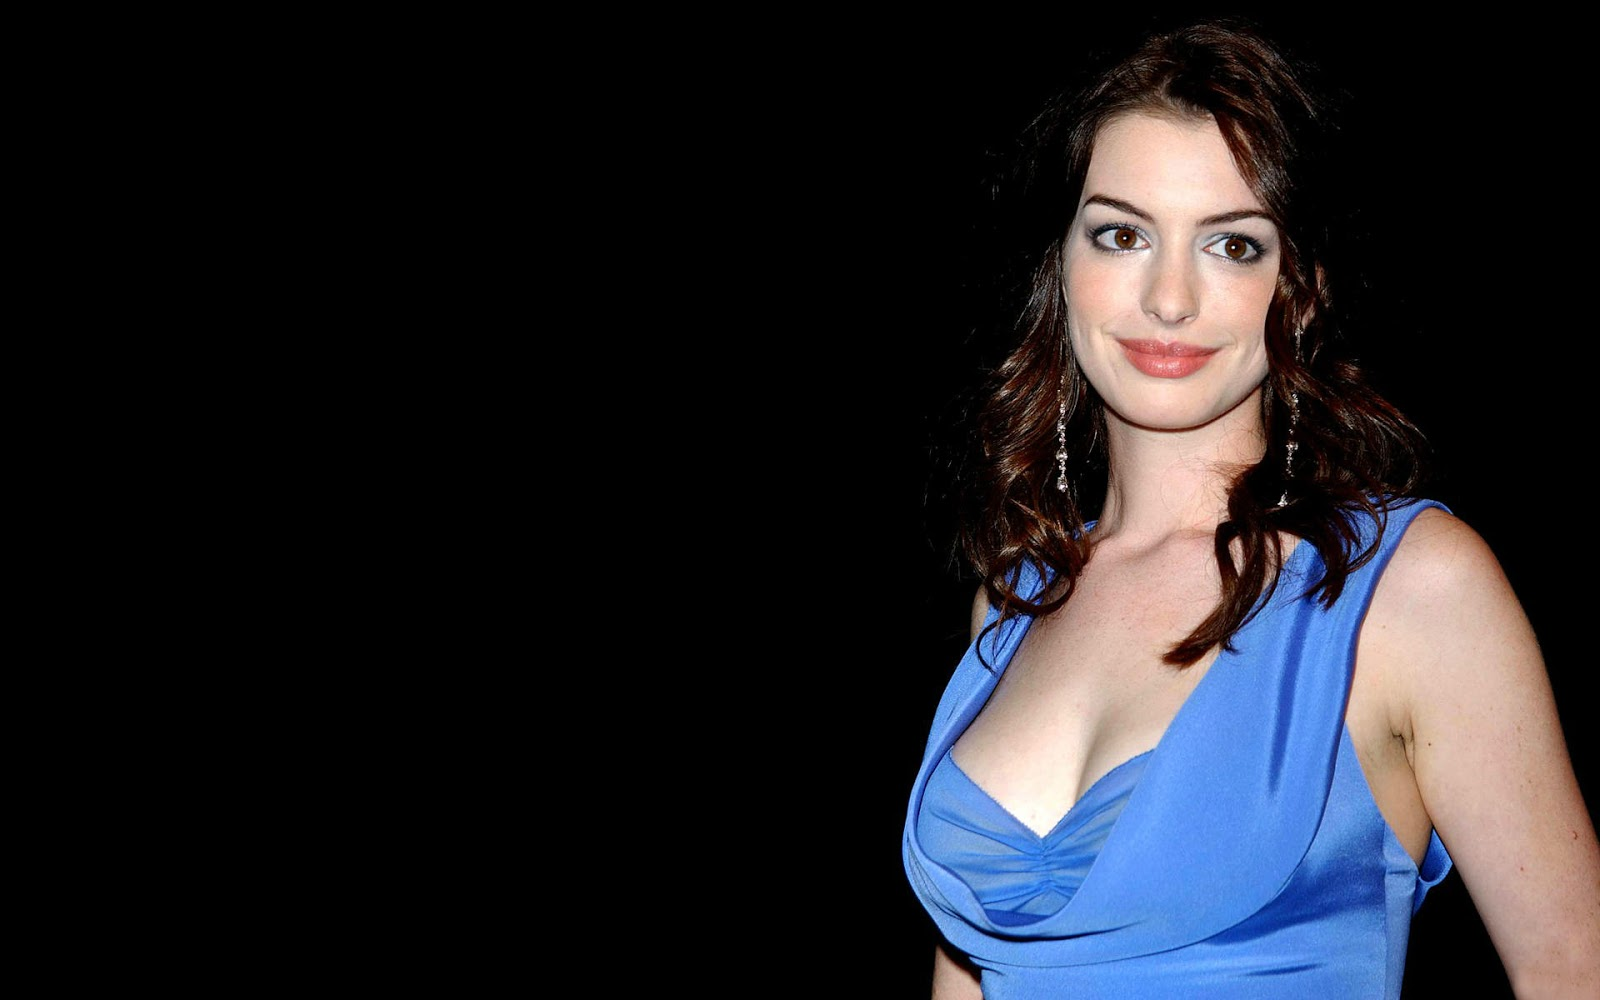 Harsh 3d Name Wallpaper Anne Hathaway Hd Wallpapers